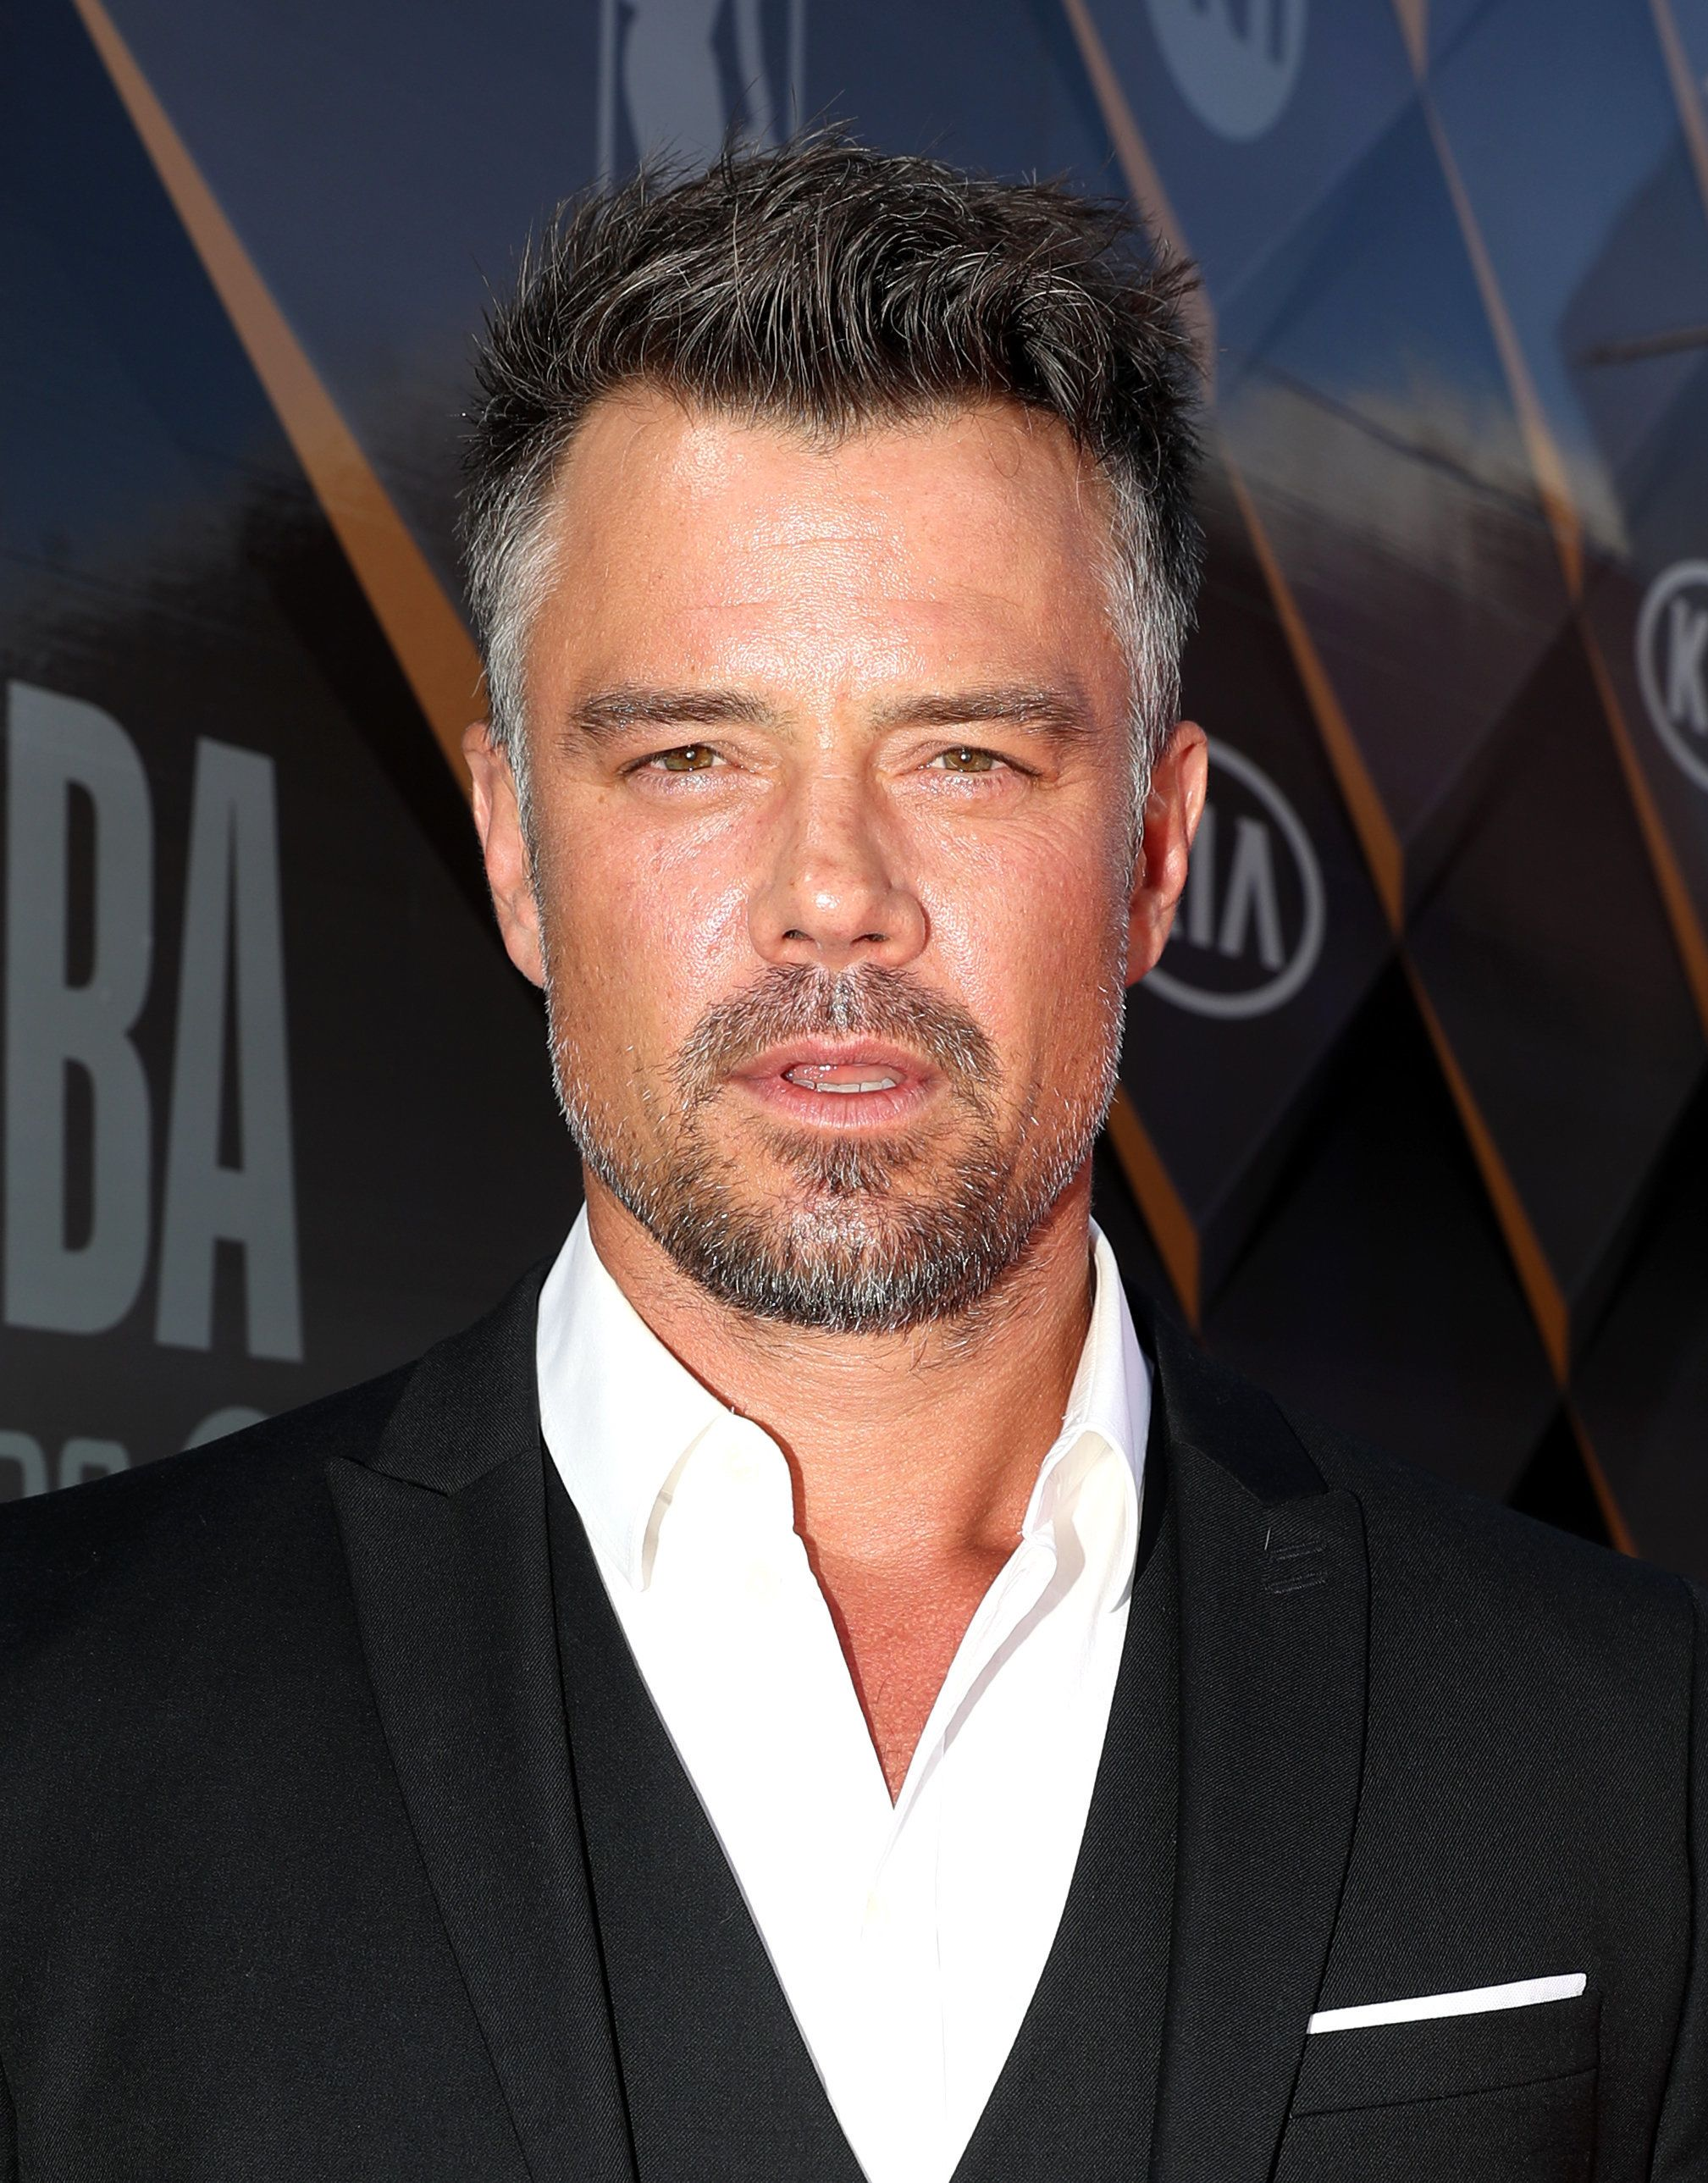 SANTA MONICA, CA - JUNE 25:  Josh Duhamel attends 2018 NBA Awards at Barkar Hangar on June 25, 2018 in Santa Monica, California.  (Photo by Johnny Nunez/Getty Images for Turner Sports)